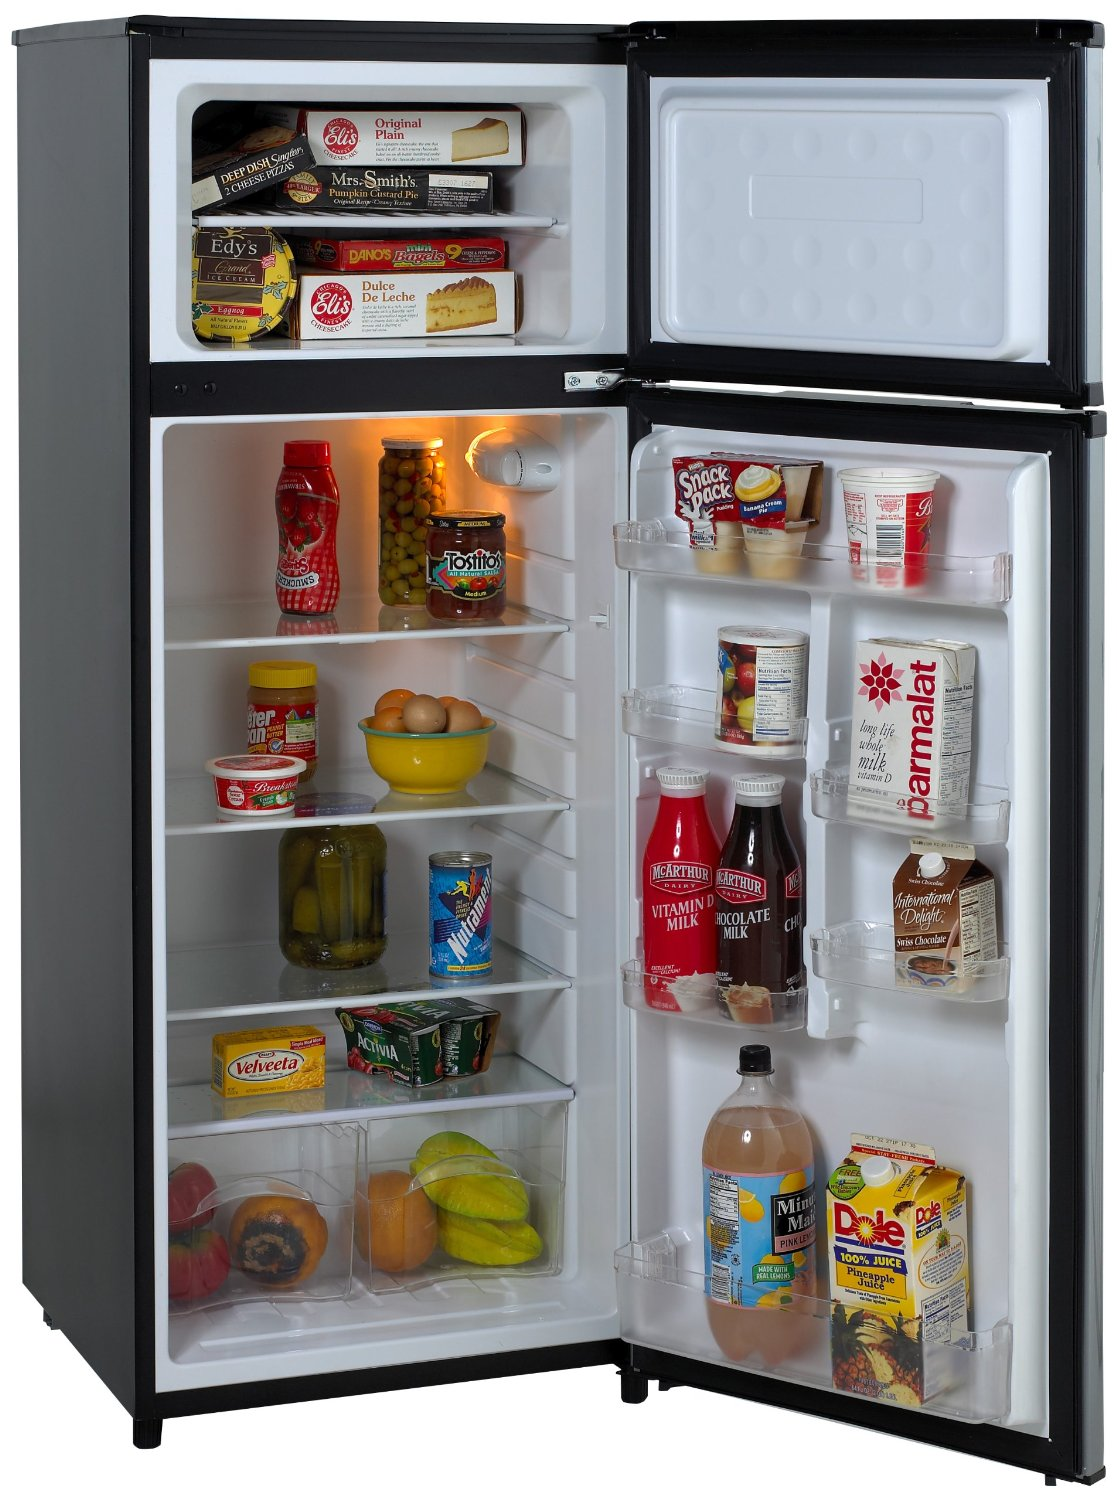 Best Refrigerators in The Price Range $300 - $499